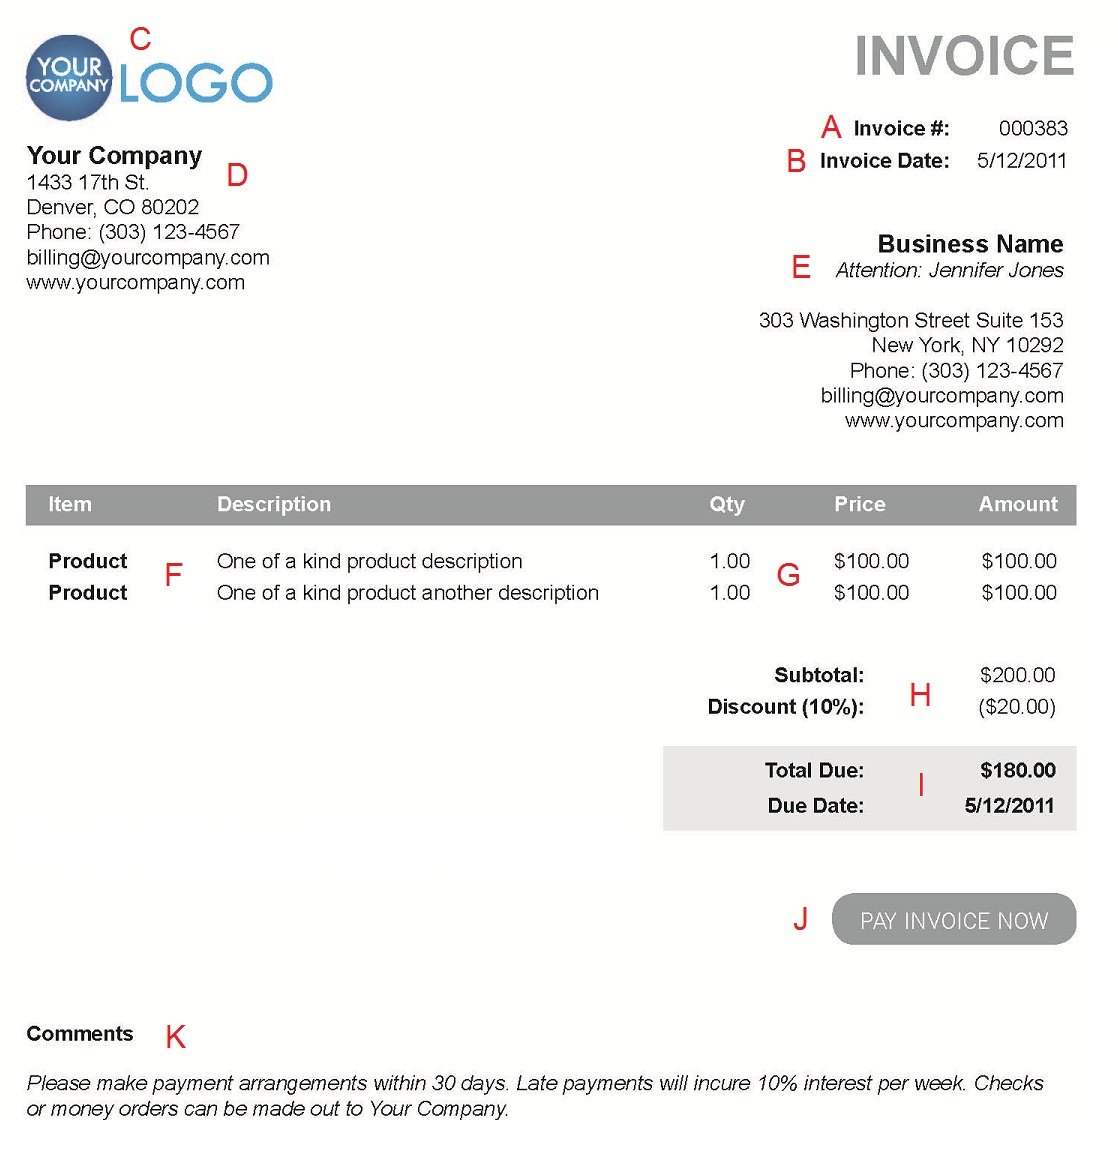 Soulfulpowerus  Marvelous The  Different Sections Of An Electronic Payment Invoice With Luxury A  With Awesome Simple Free Invoice Template Also Blank Sales Invoice In Addition Invoice Doc Template And Invoice Template Pdf Free As Well As Maintenance Invoice Additionally Find Out Invoice Price Of Car From Paysimplecom With Soulfulpowerus  Luxury The  Different Sections Of An Electronic Payment Invoice With Awesome A  And Marvelous Simple Free Invoice Template Also Blank Sales Invoice In Addition Invoice Doc Template From Paysimplecom